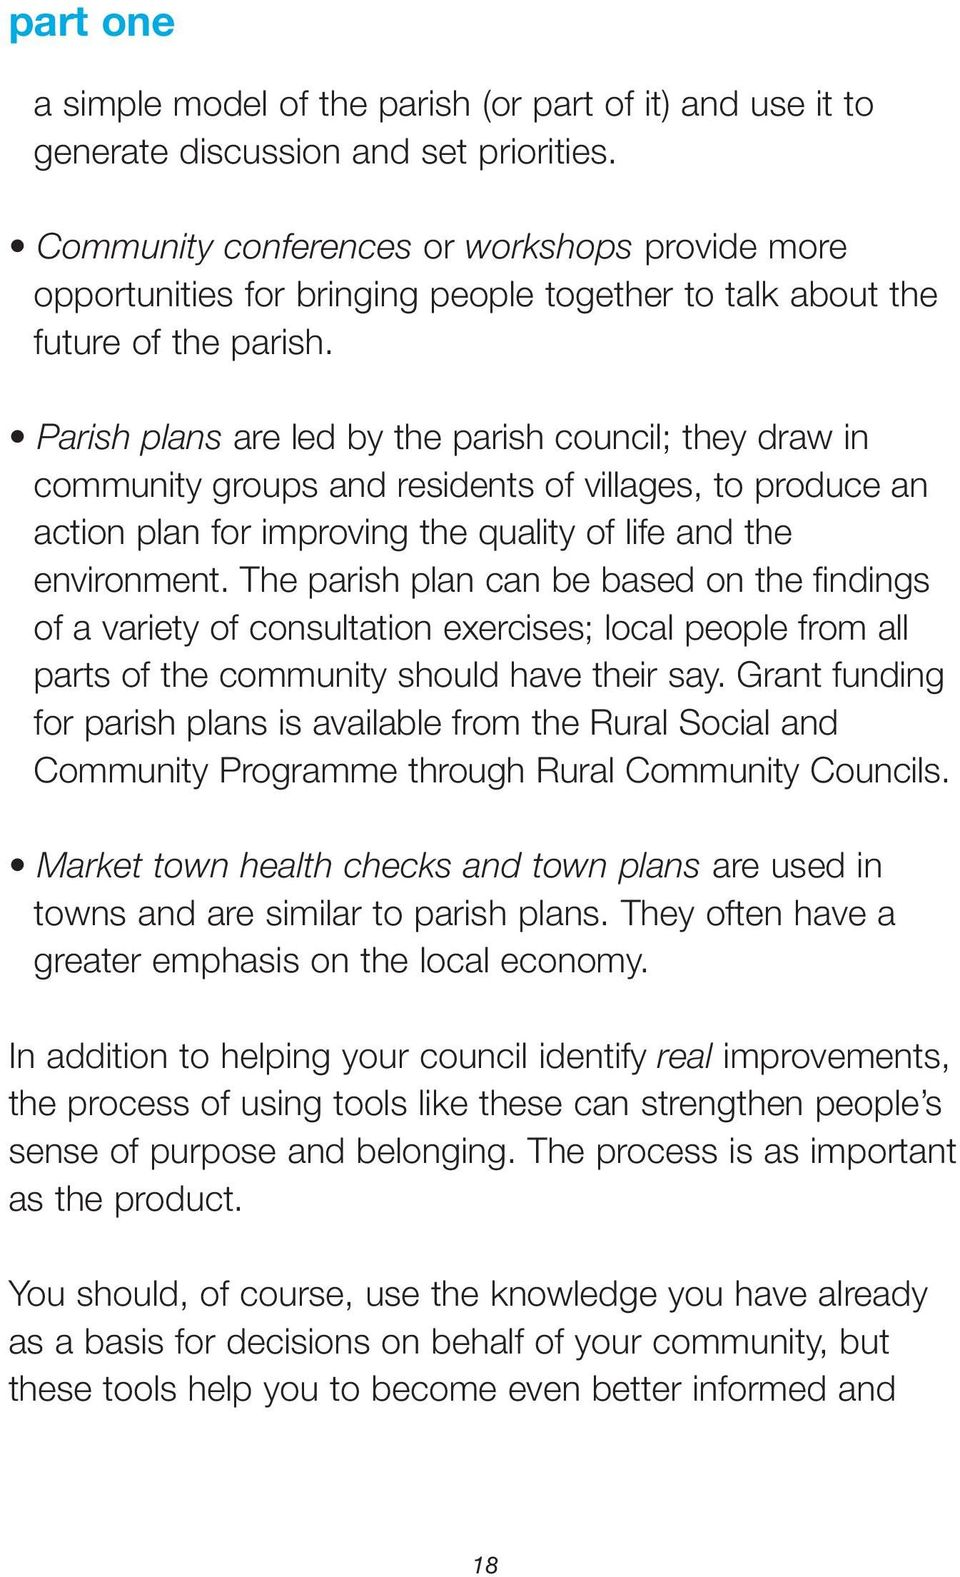 Parish plans are led by the parish council; they draw in community groups and residents of villages, to produce an action plan for improving the quality of life and the environment.